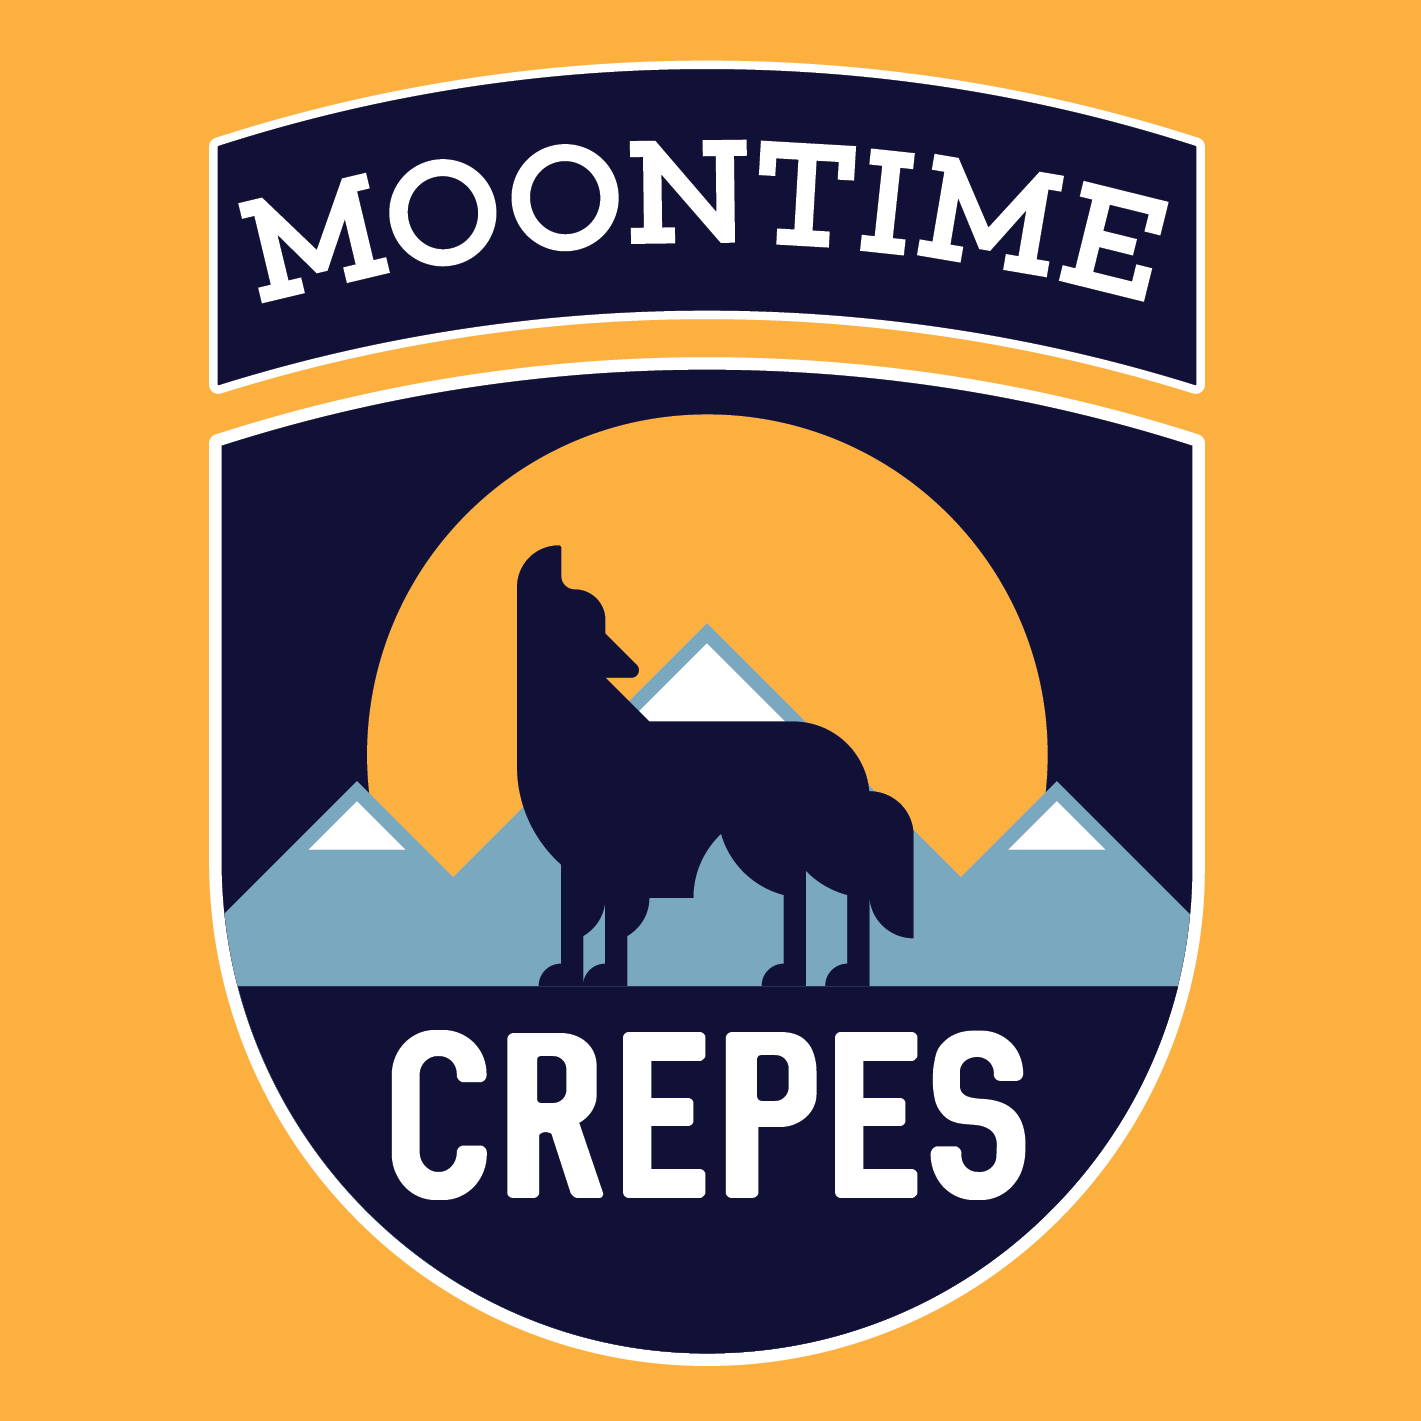 Moontime Crepes logo